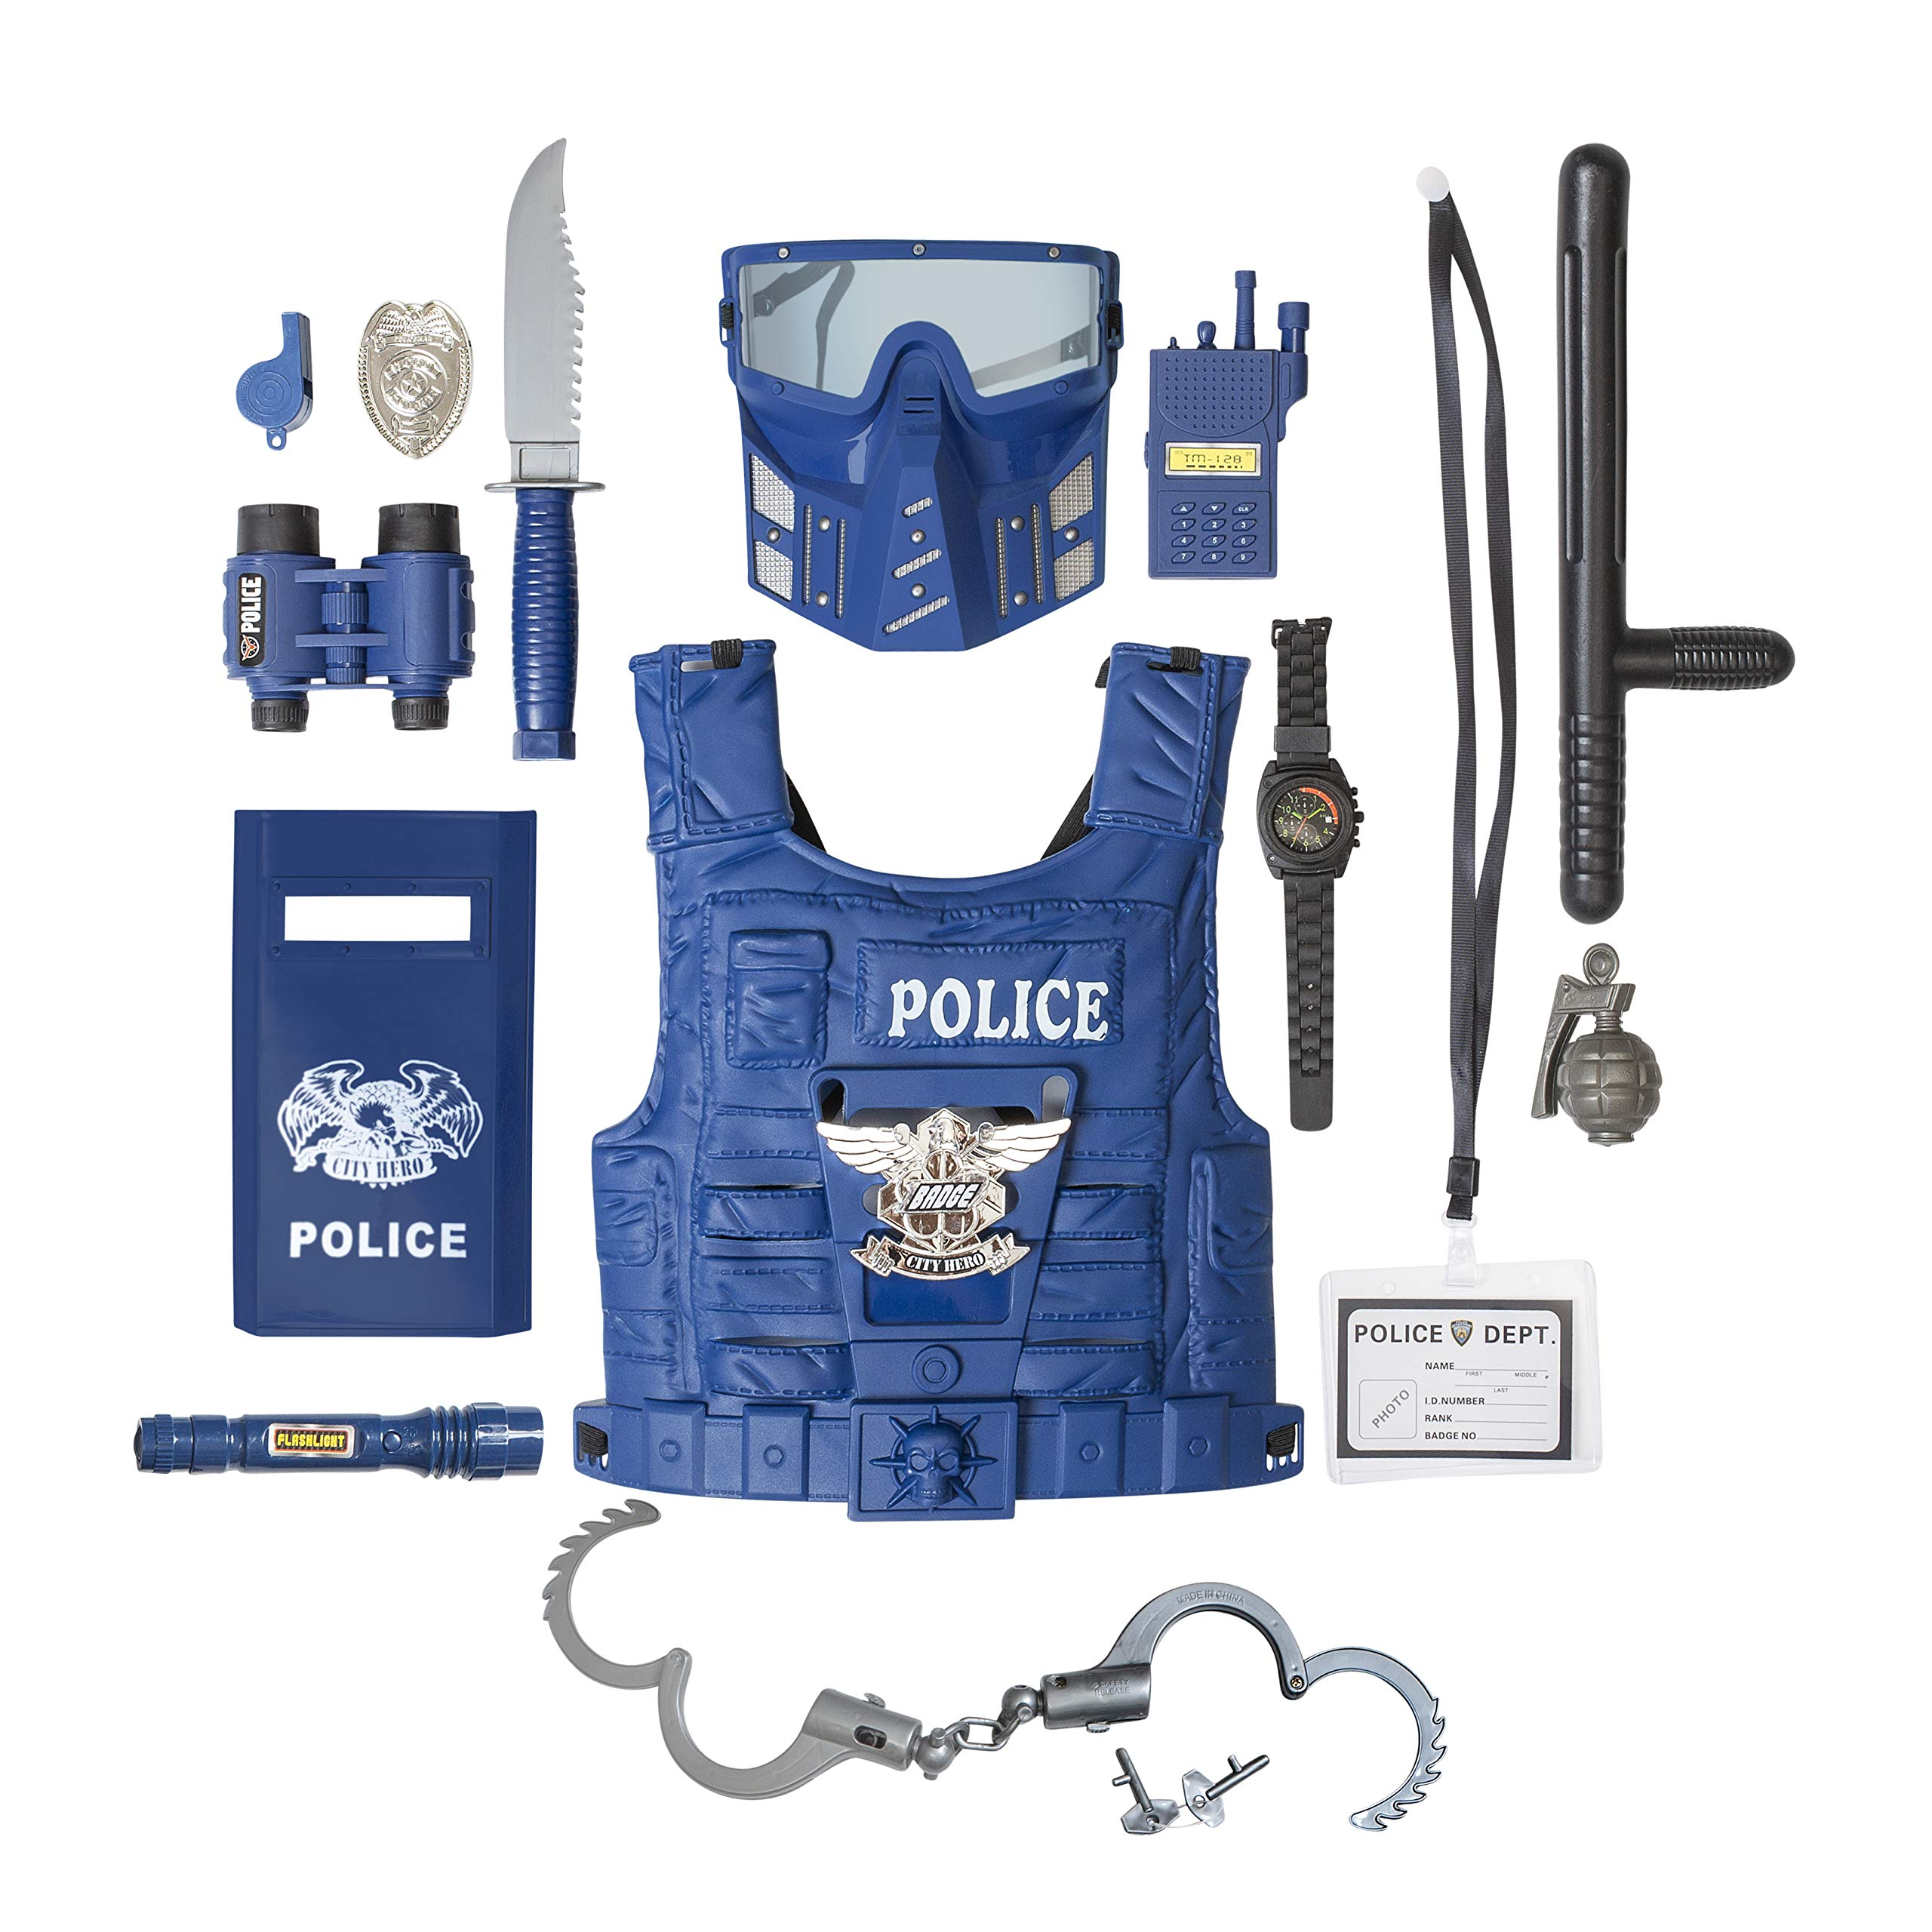 Kids Police Costume for Role Play 14 Pcs Police Toys with Police Badge, Kids Handcuffs, Shield, Vest, Flashing Light, Whistle, Police Baton - Police Officer Halloween Costume for Boys and Girls by The M World